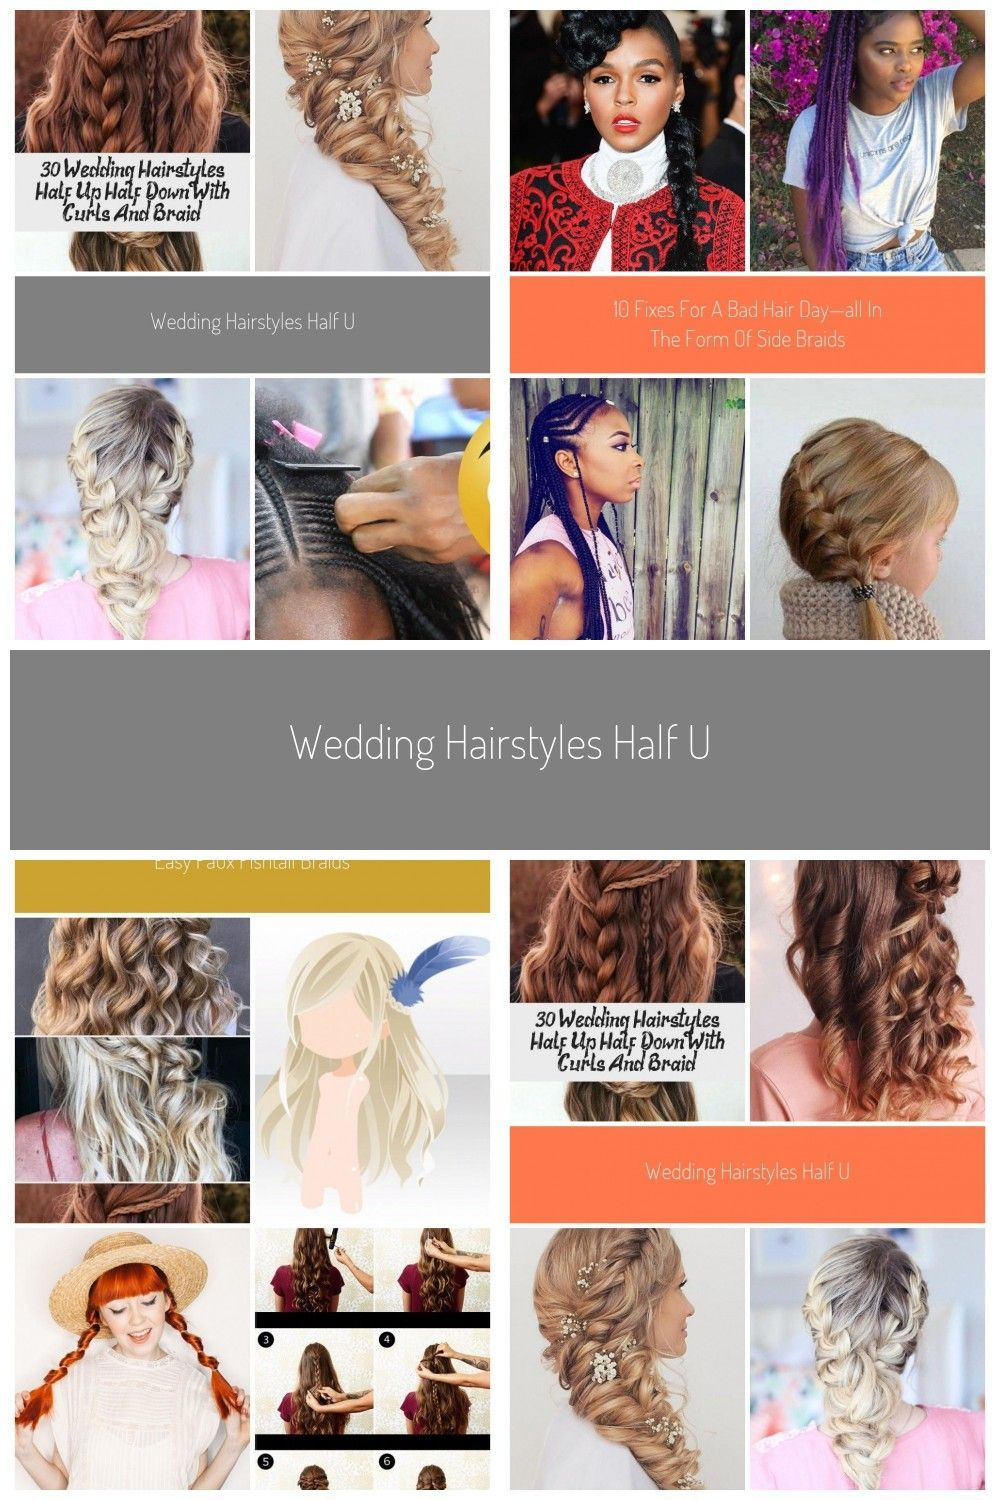 Read more about learn how to braids #braided #feed in Braids half up half down